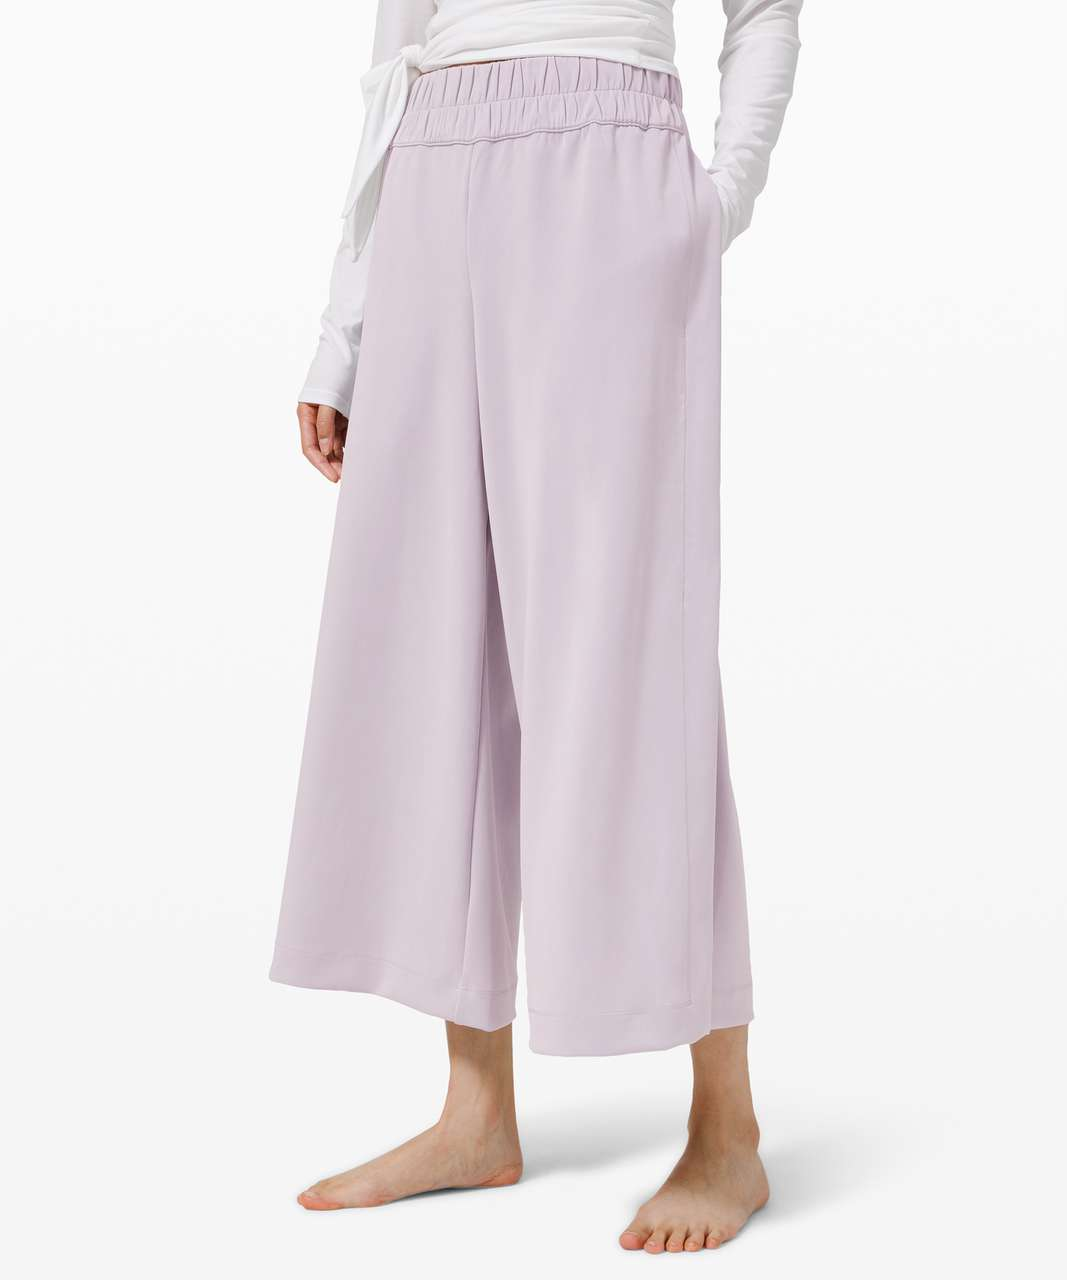 Lululemon Seek Softness Mid Rise Crop - Stargaze